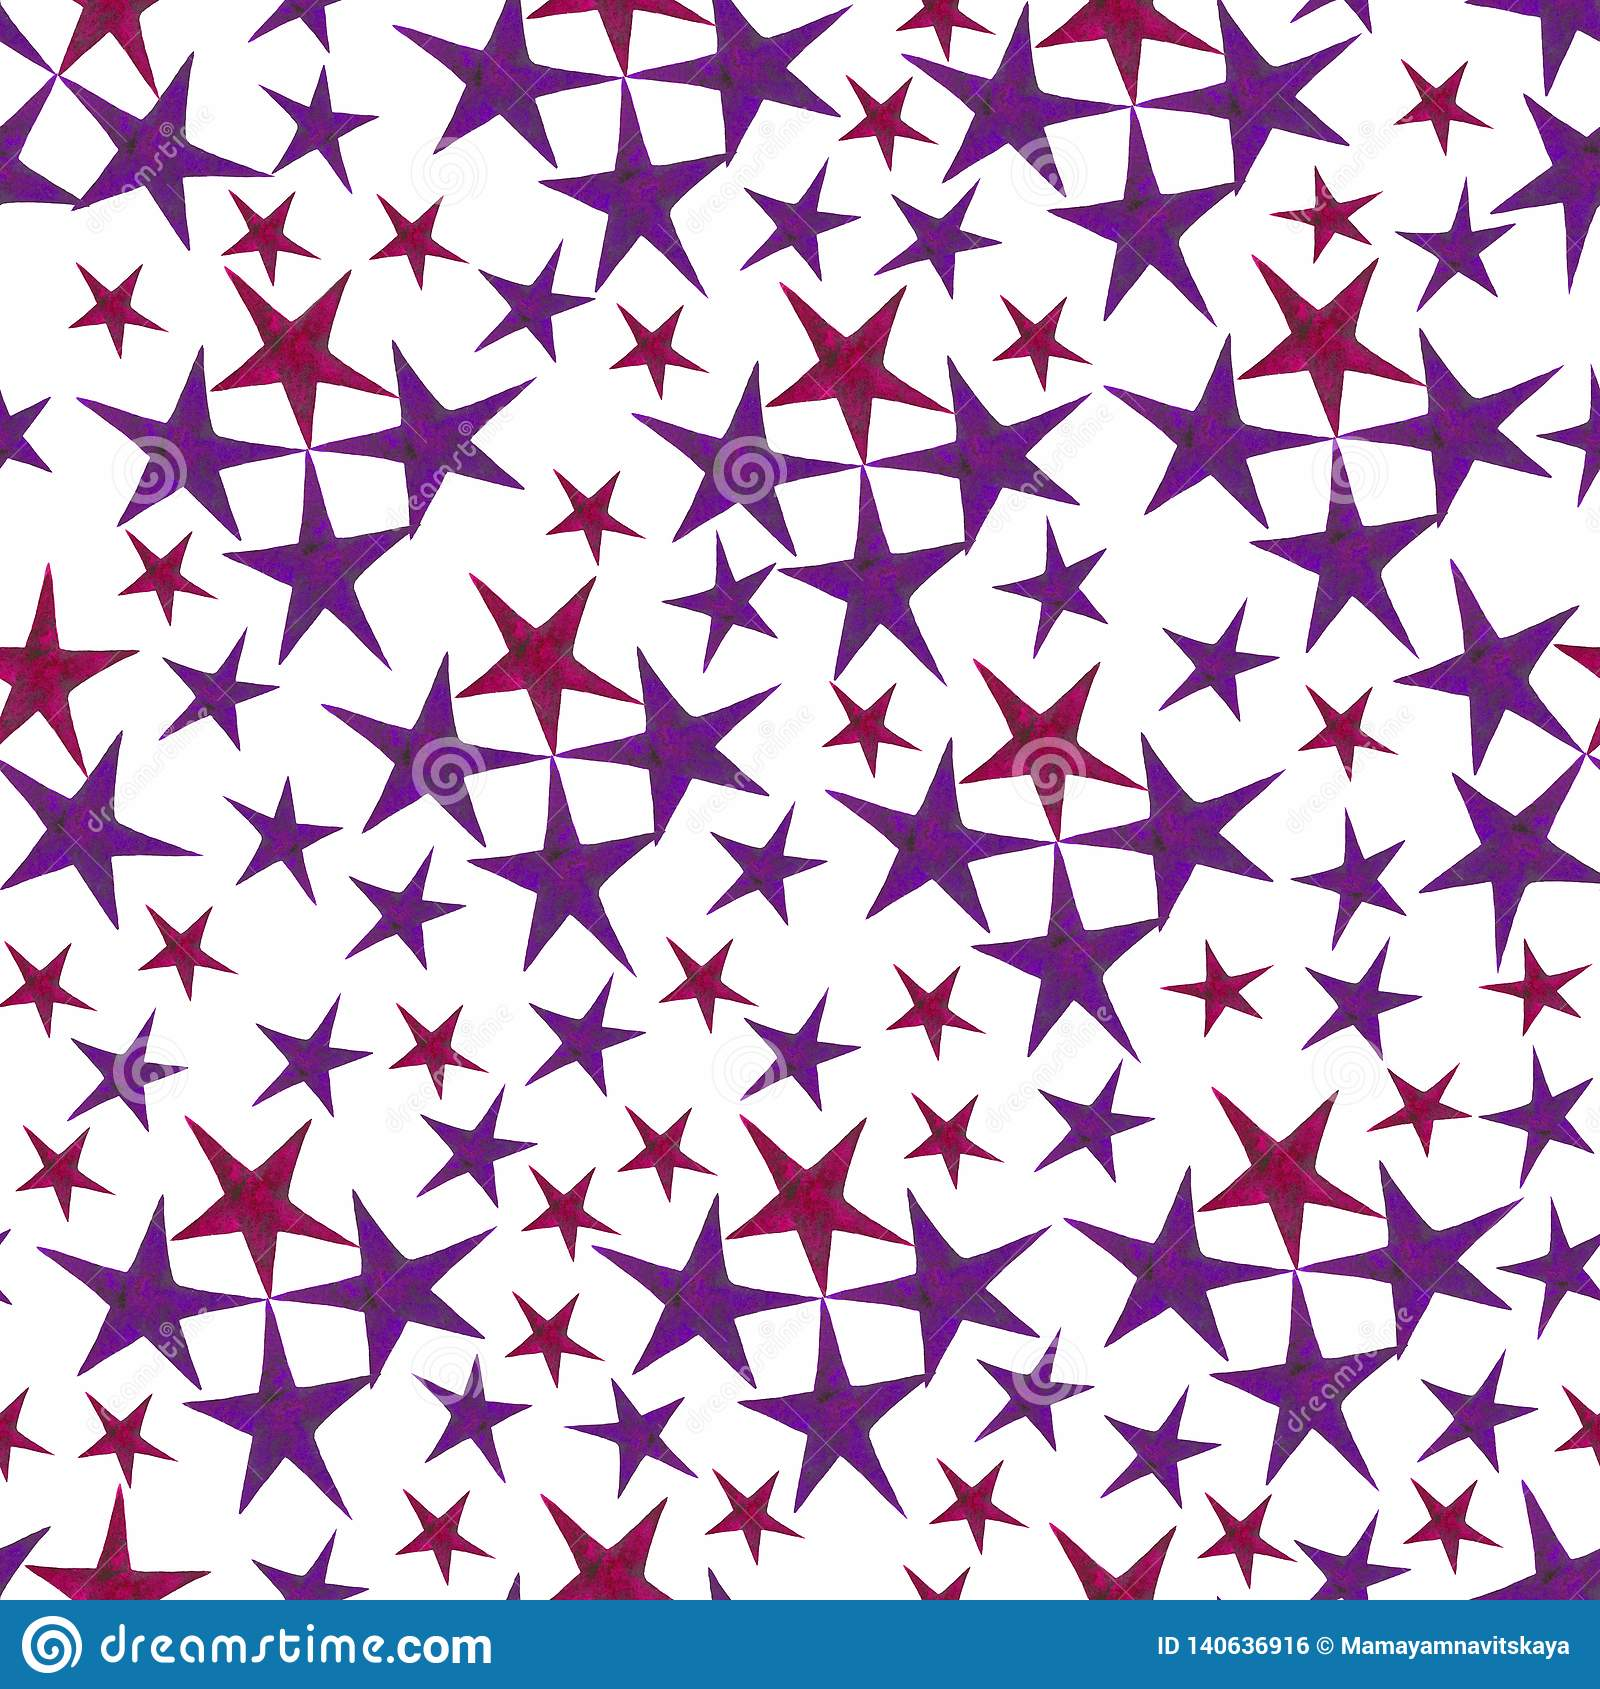 Stars pattern in red and violet colors.hand-drawn watercolor stars, isolated on white background.